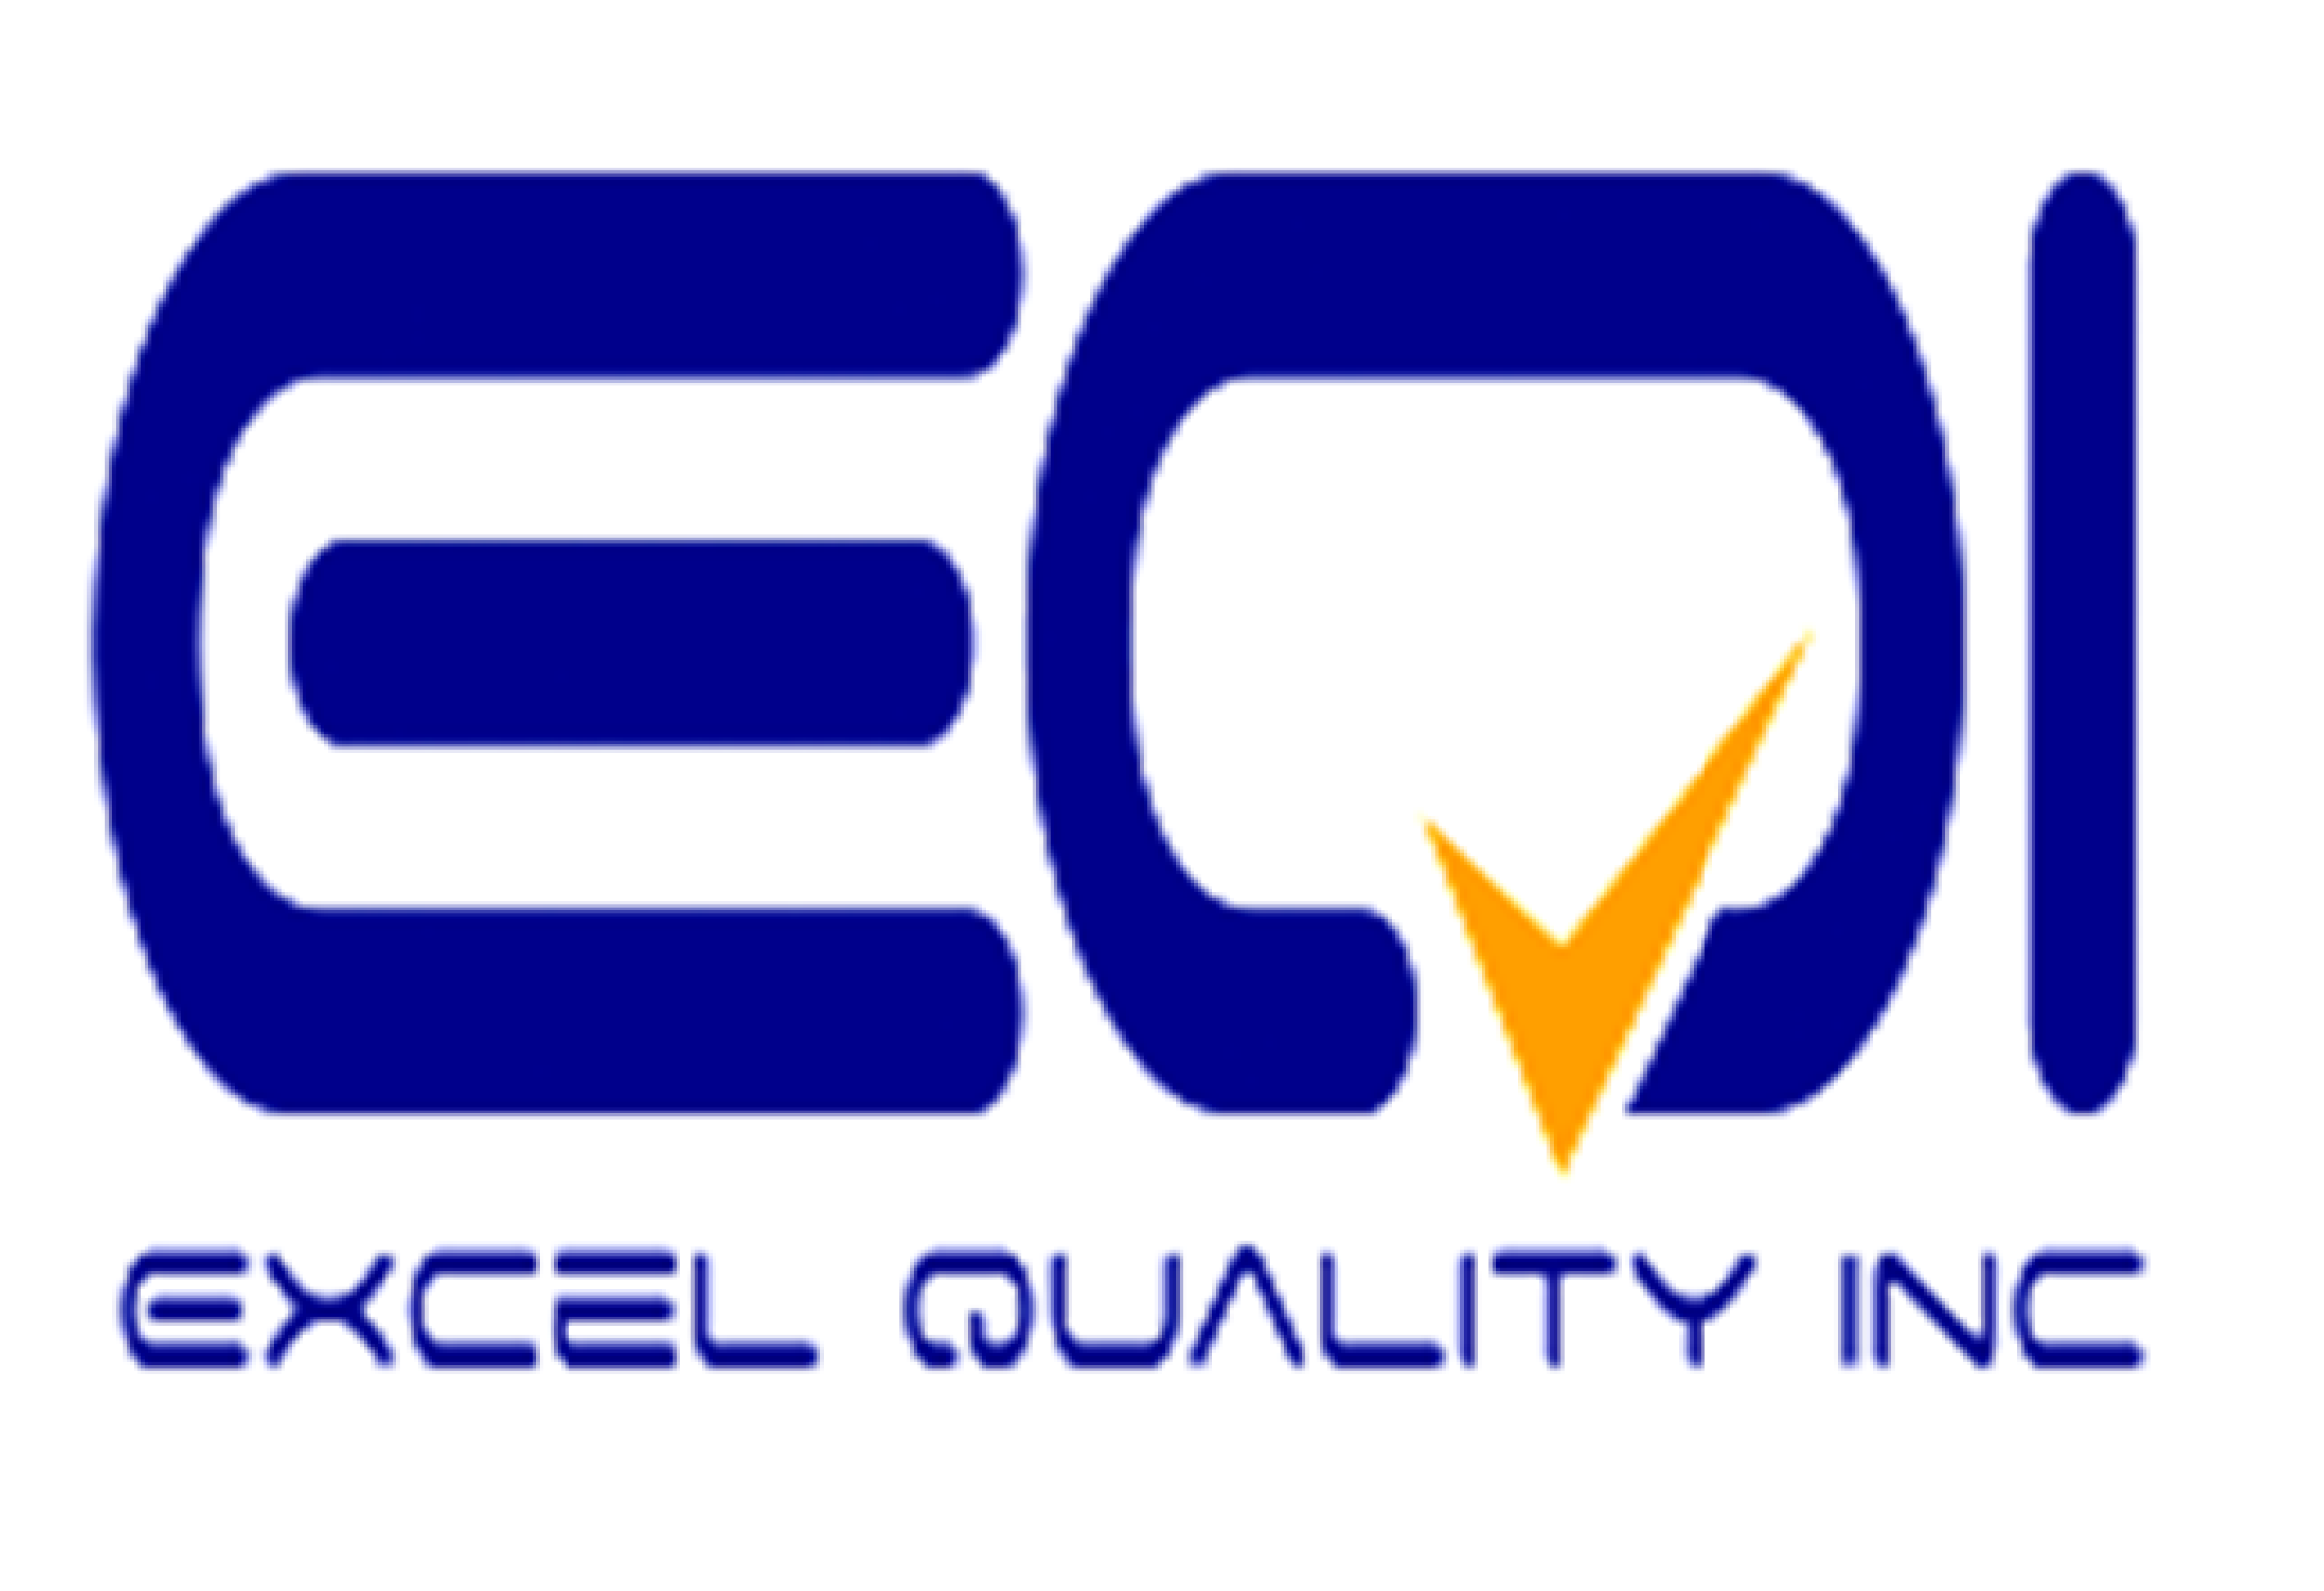 EXCEL QUALITY, INC.